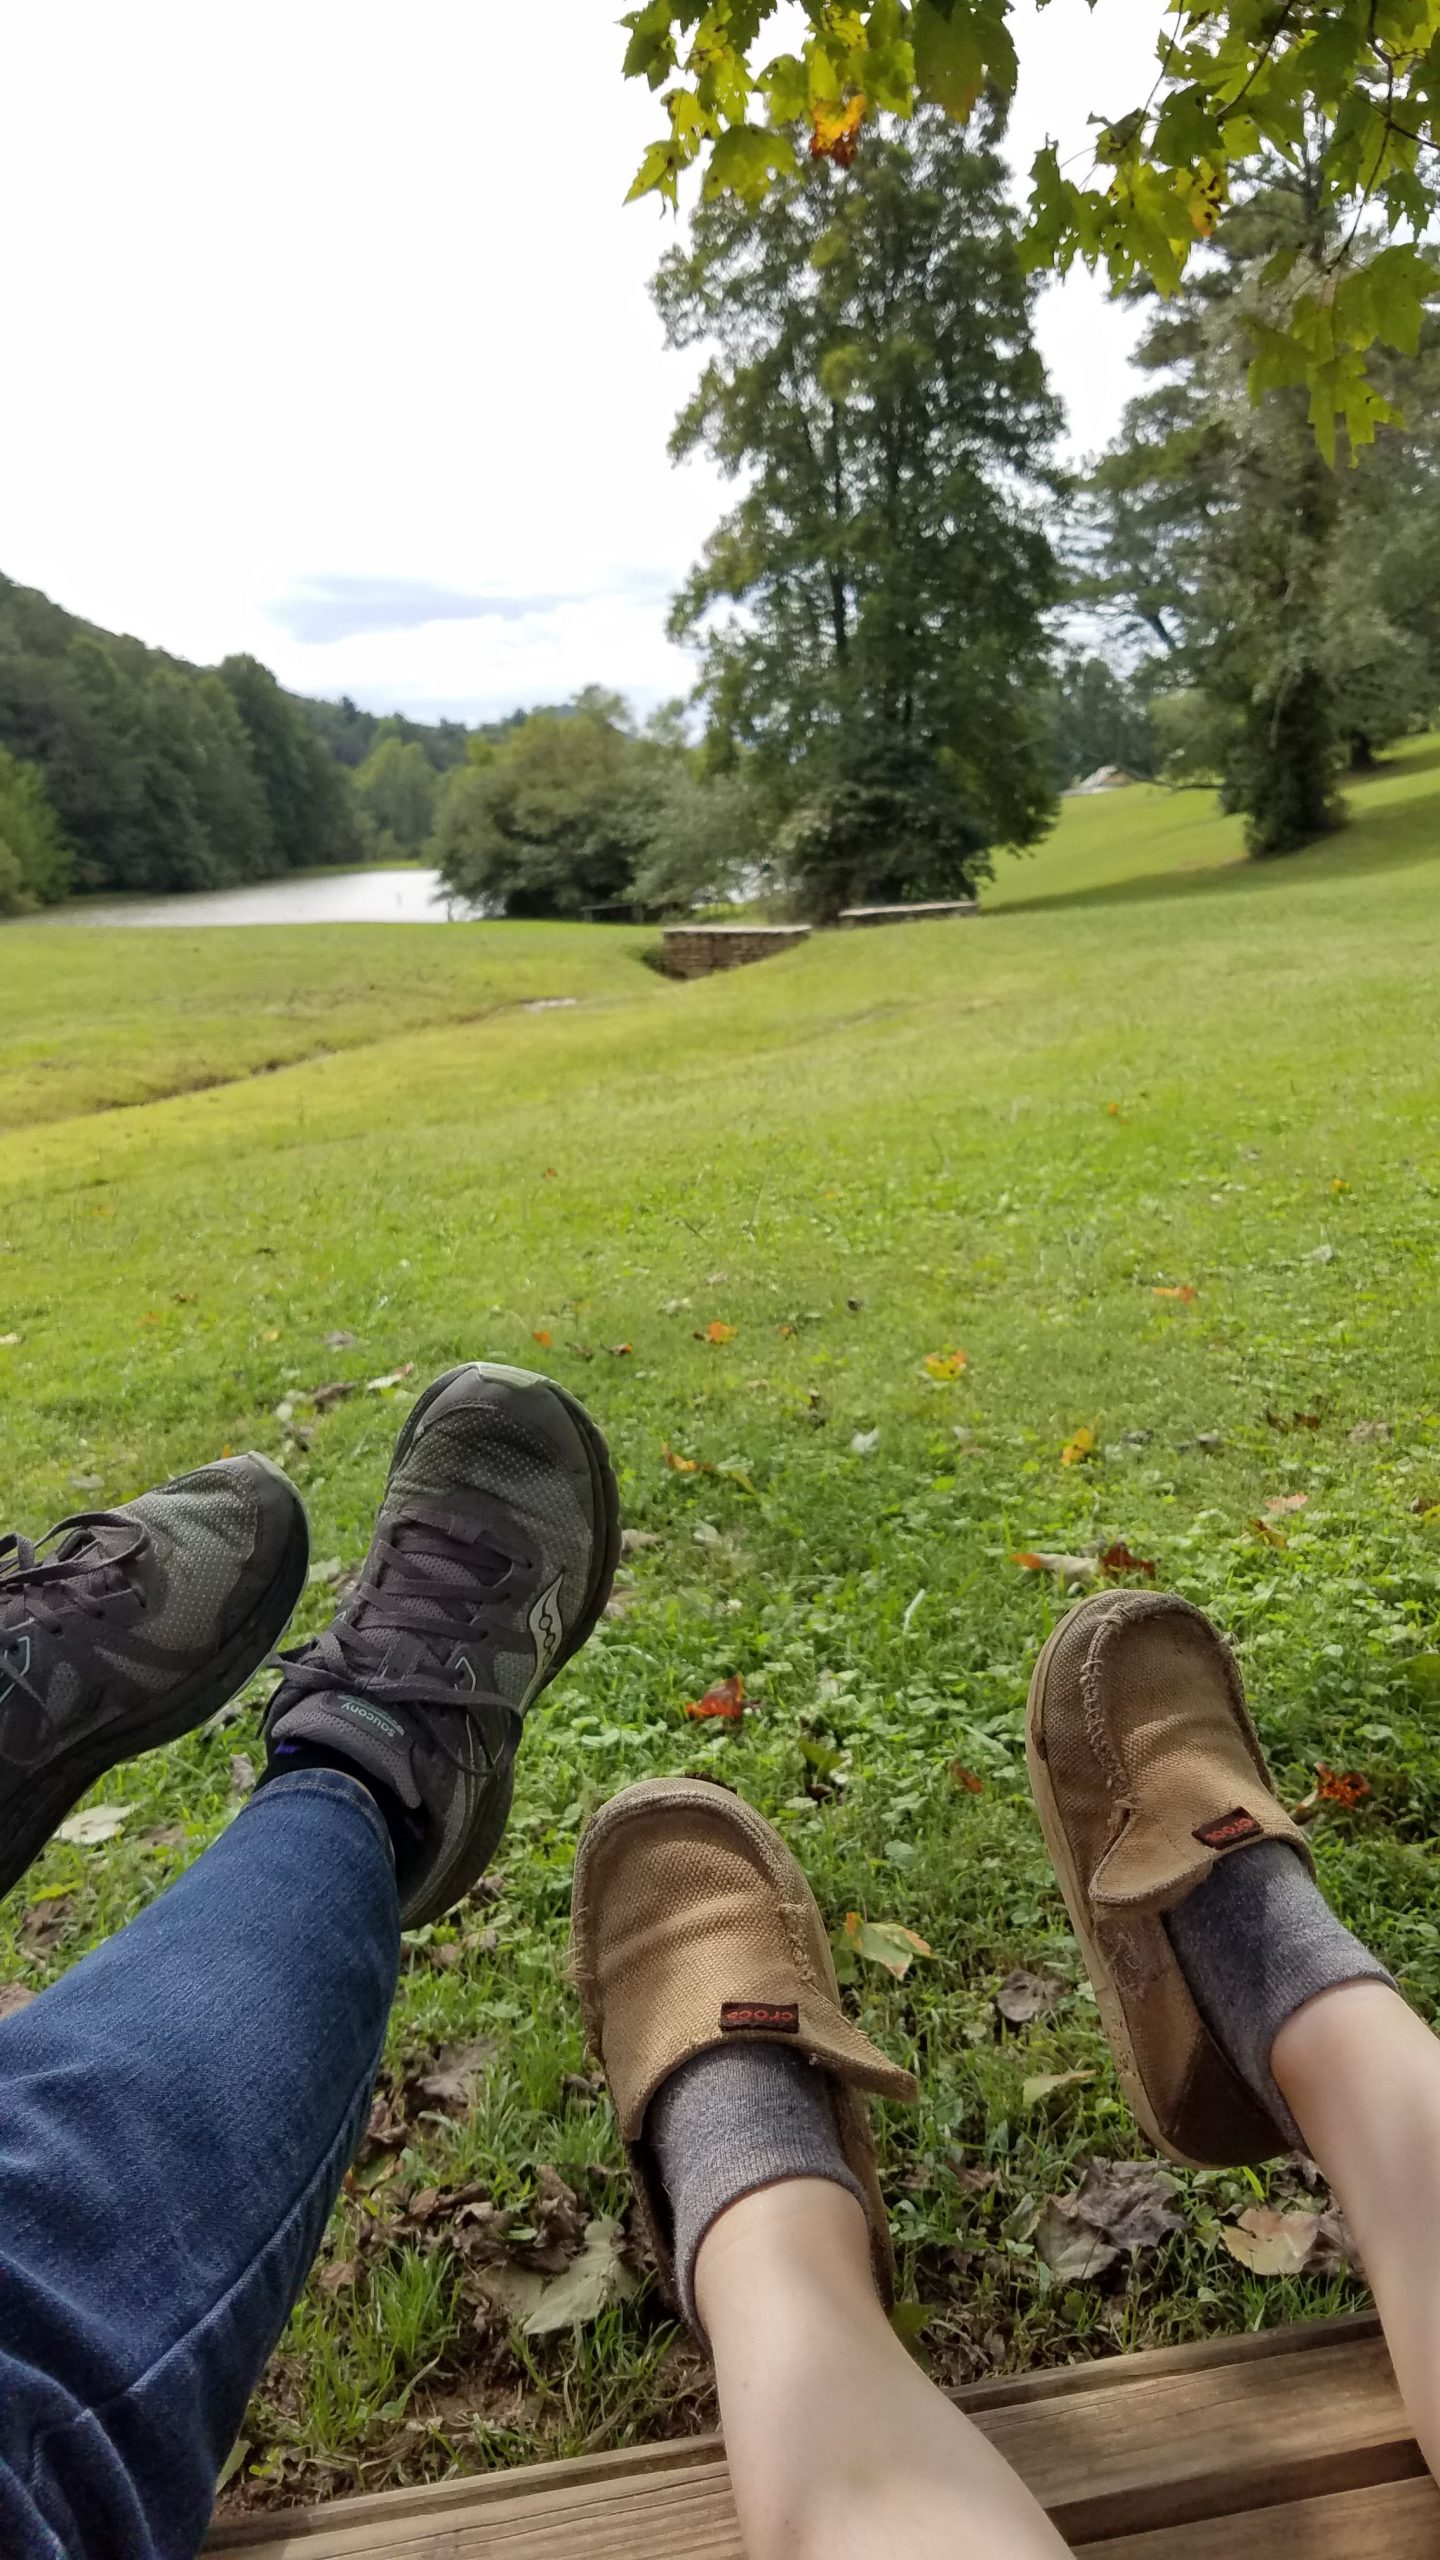 two pairs of shoes against a green scenic background